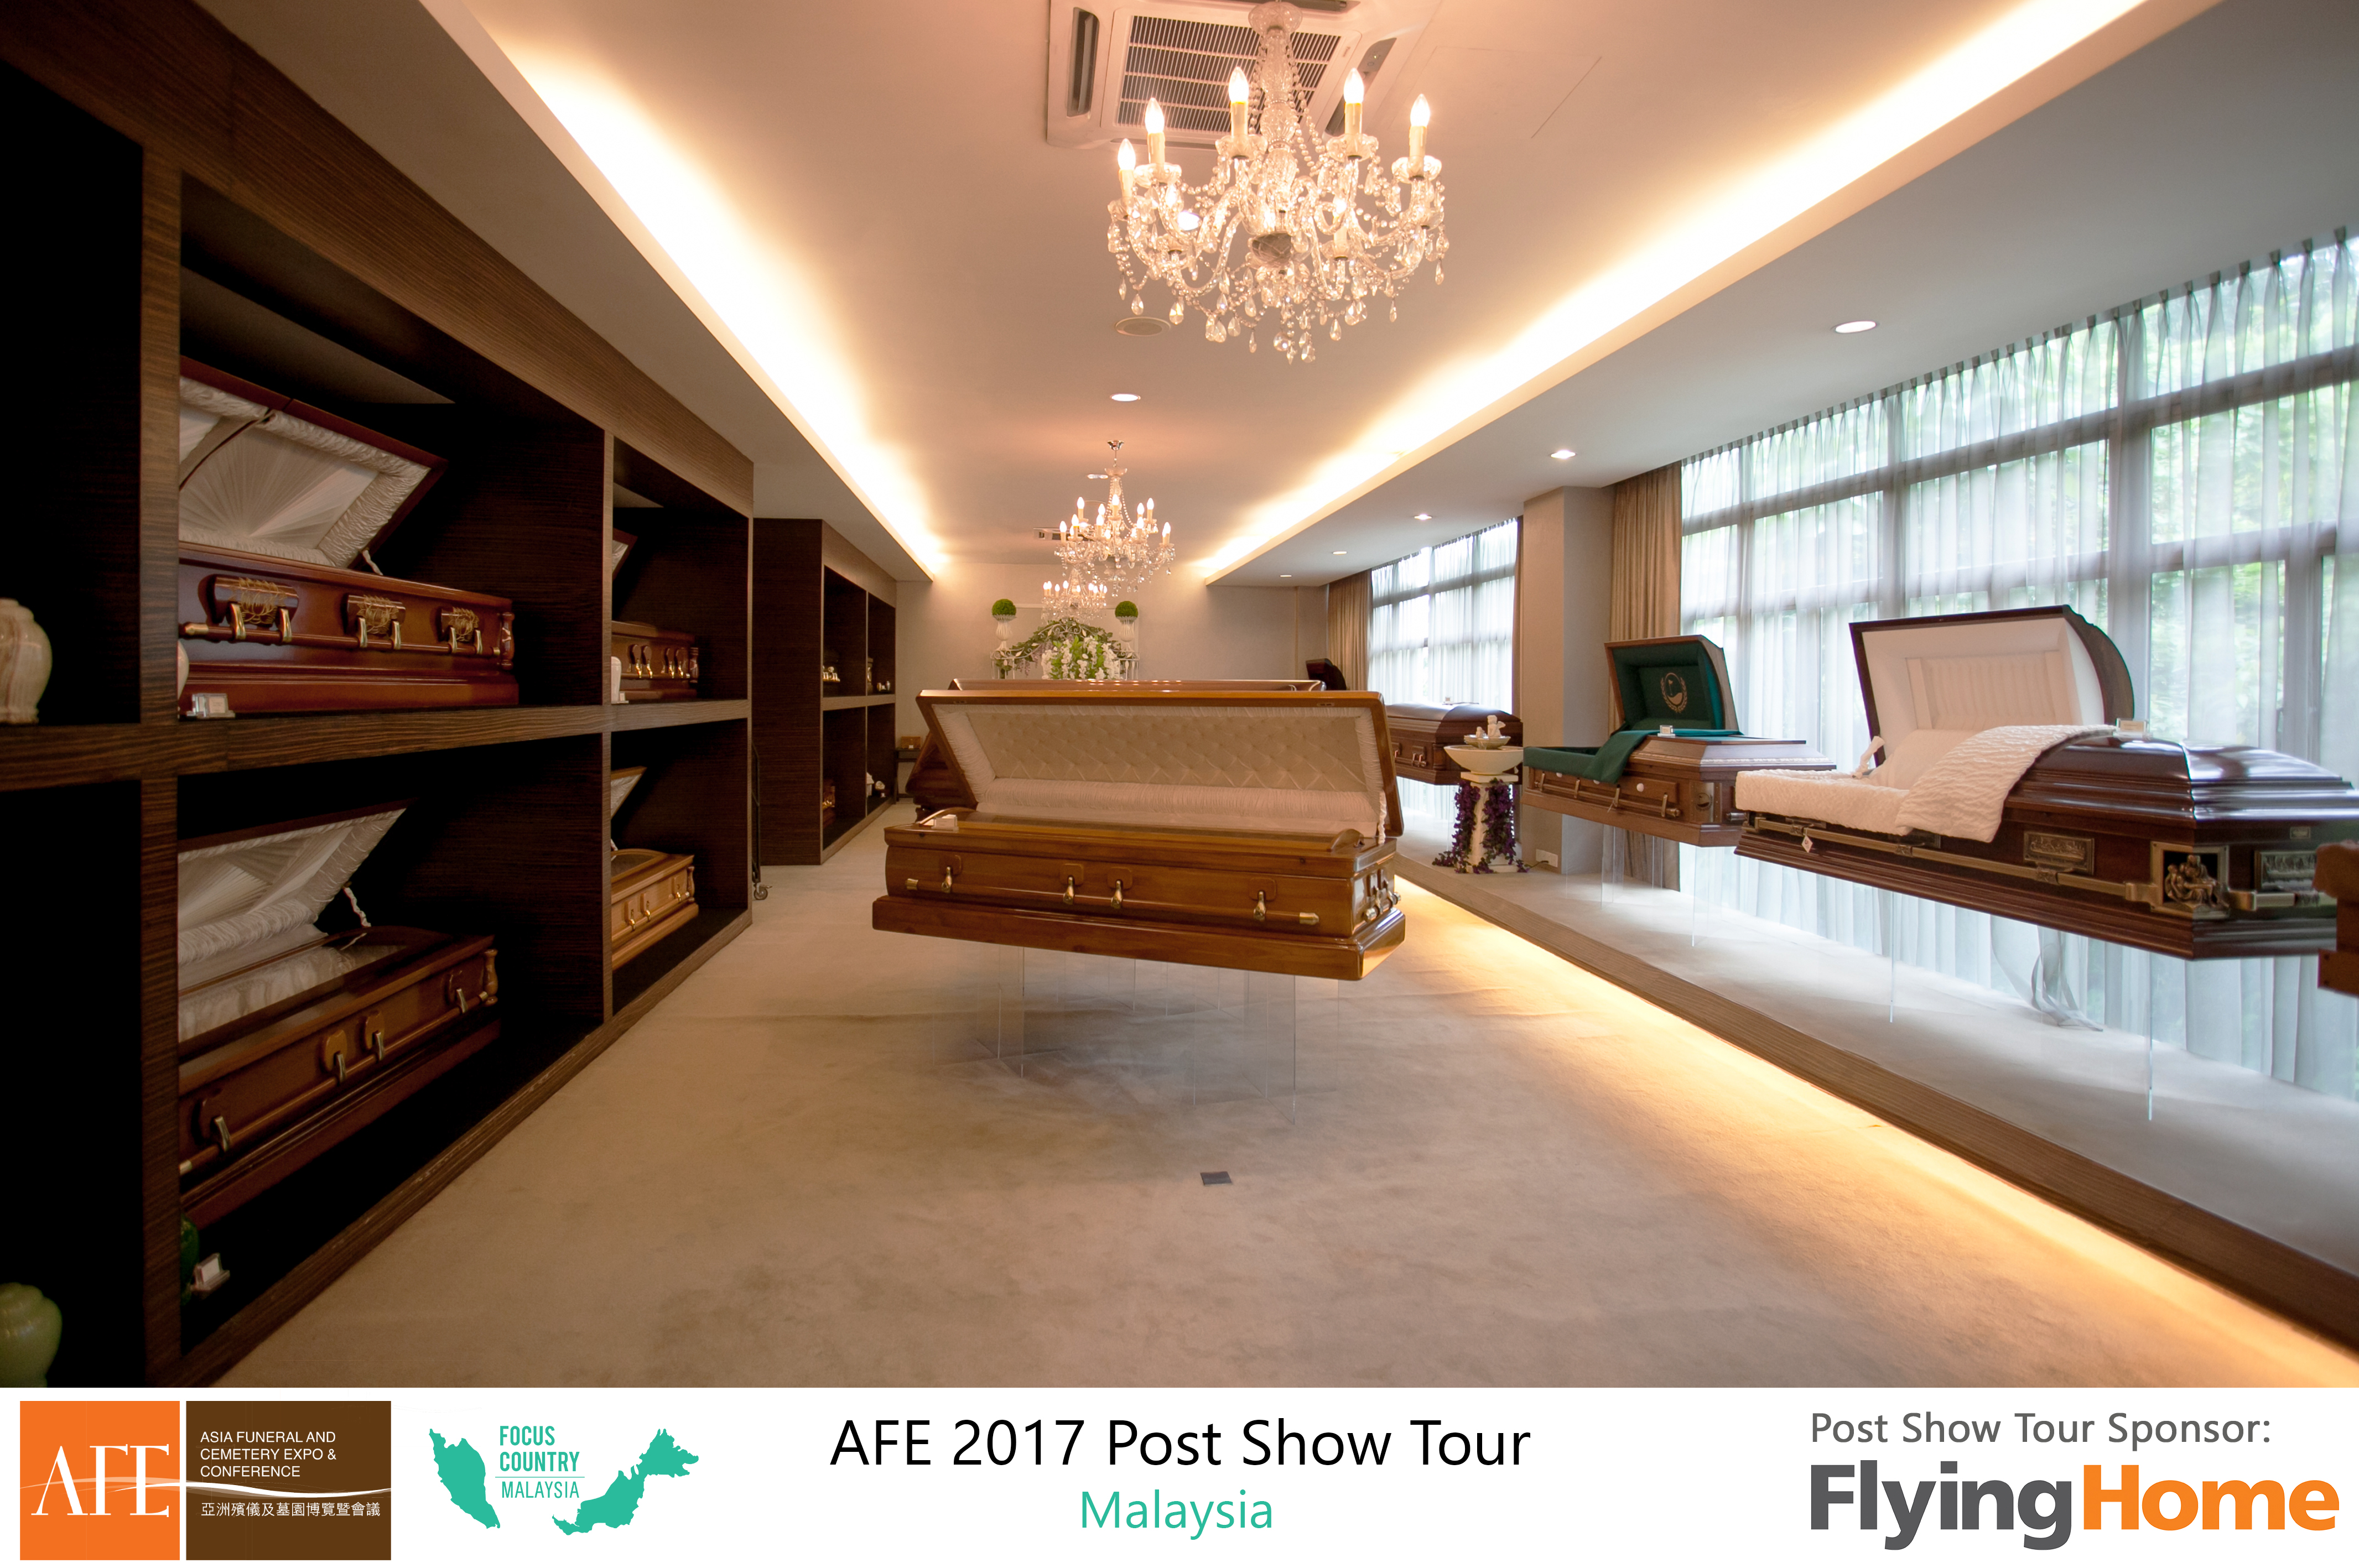 AFE Post Show Tour 2017 Day 3 -51